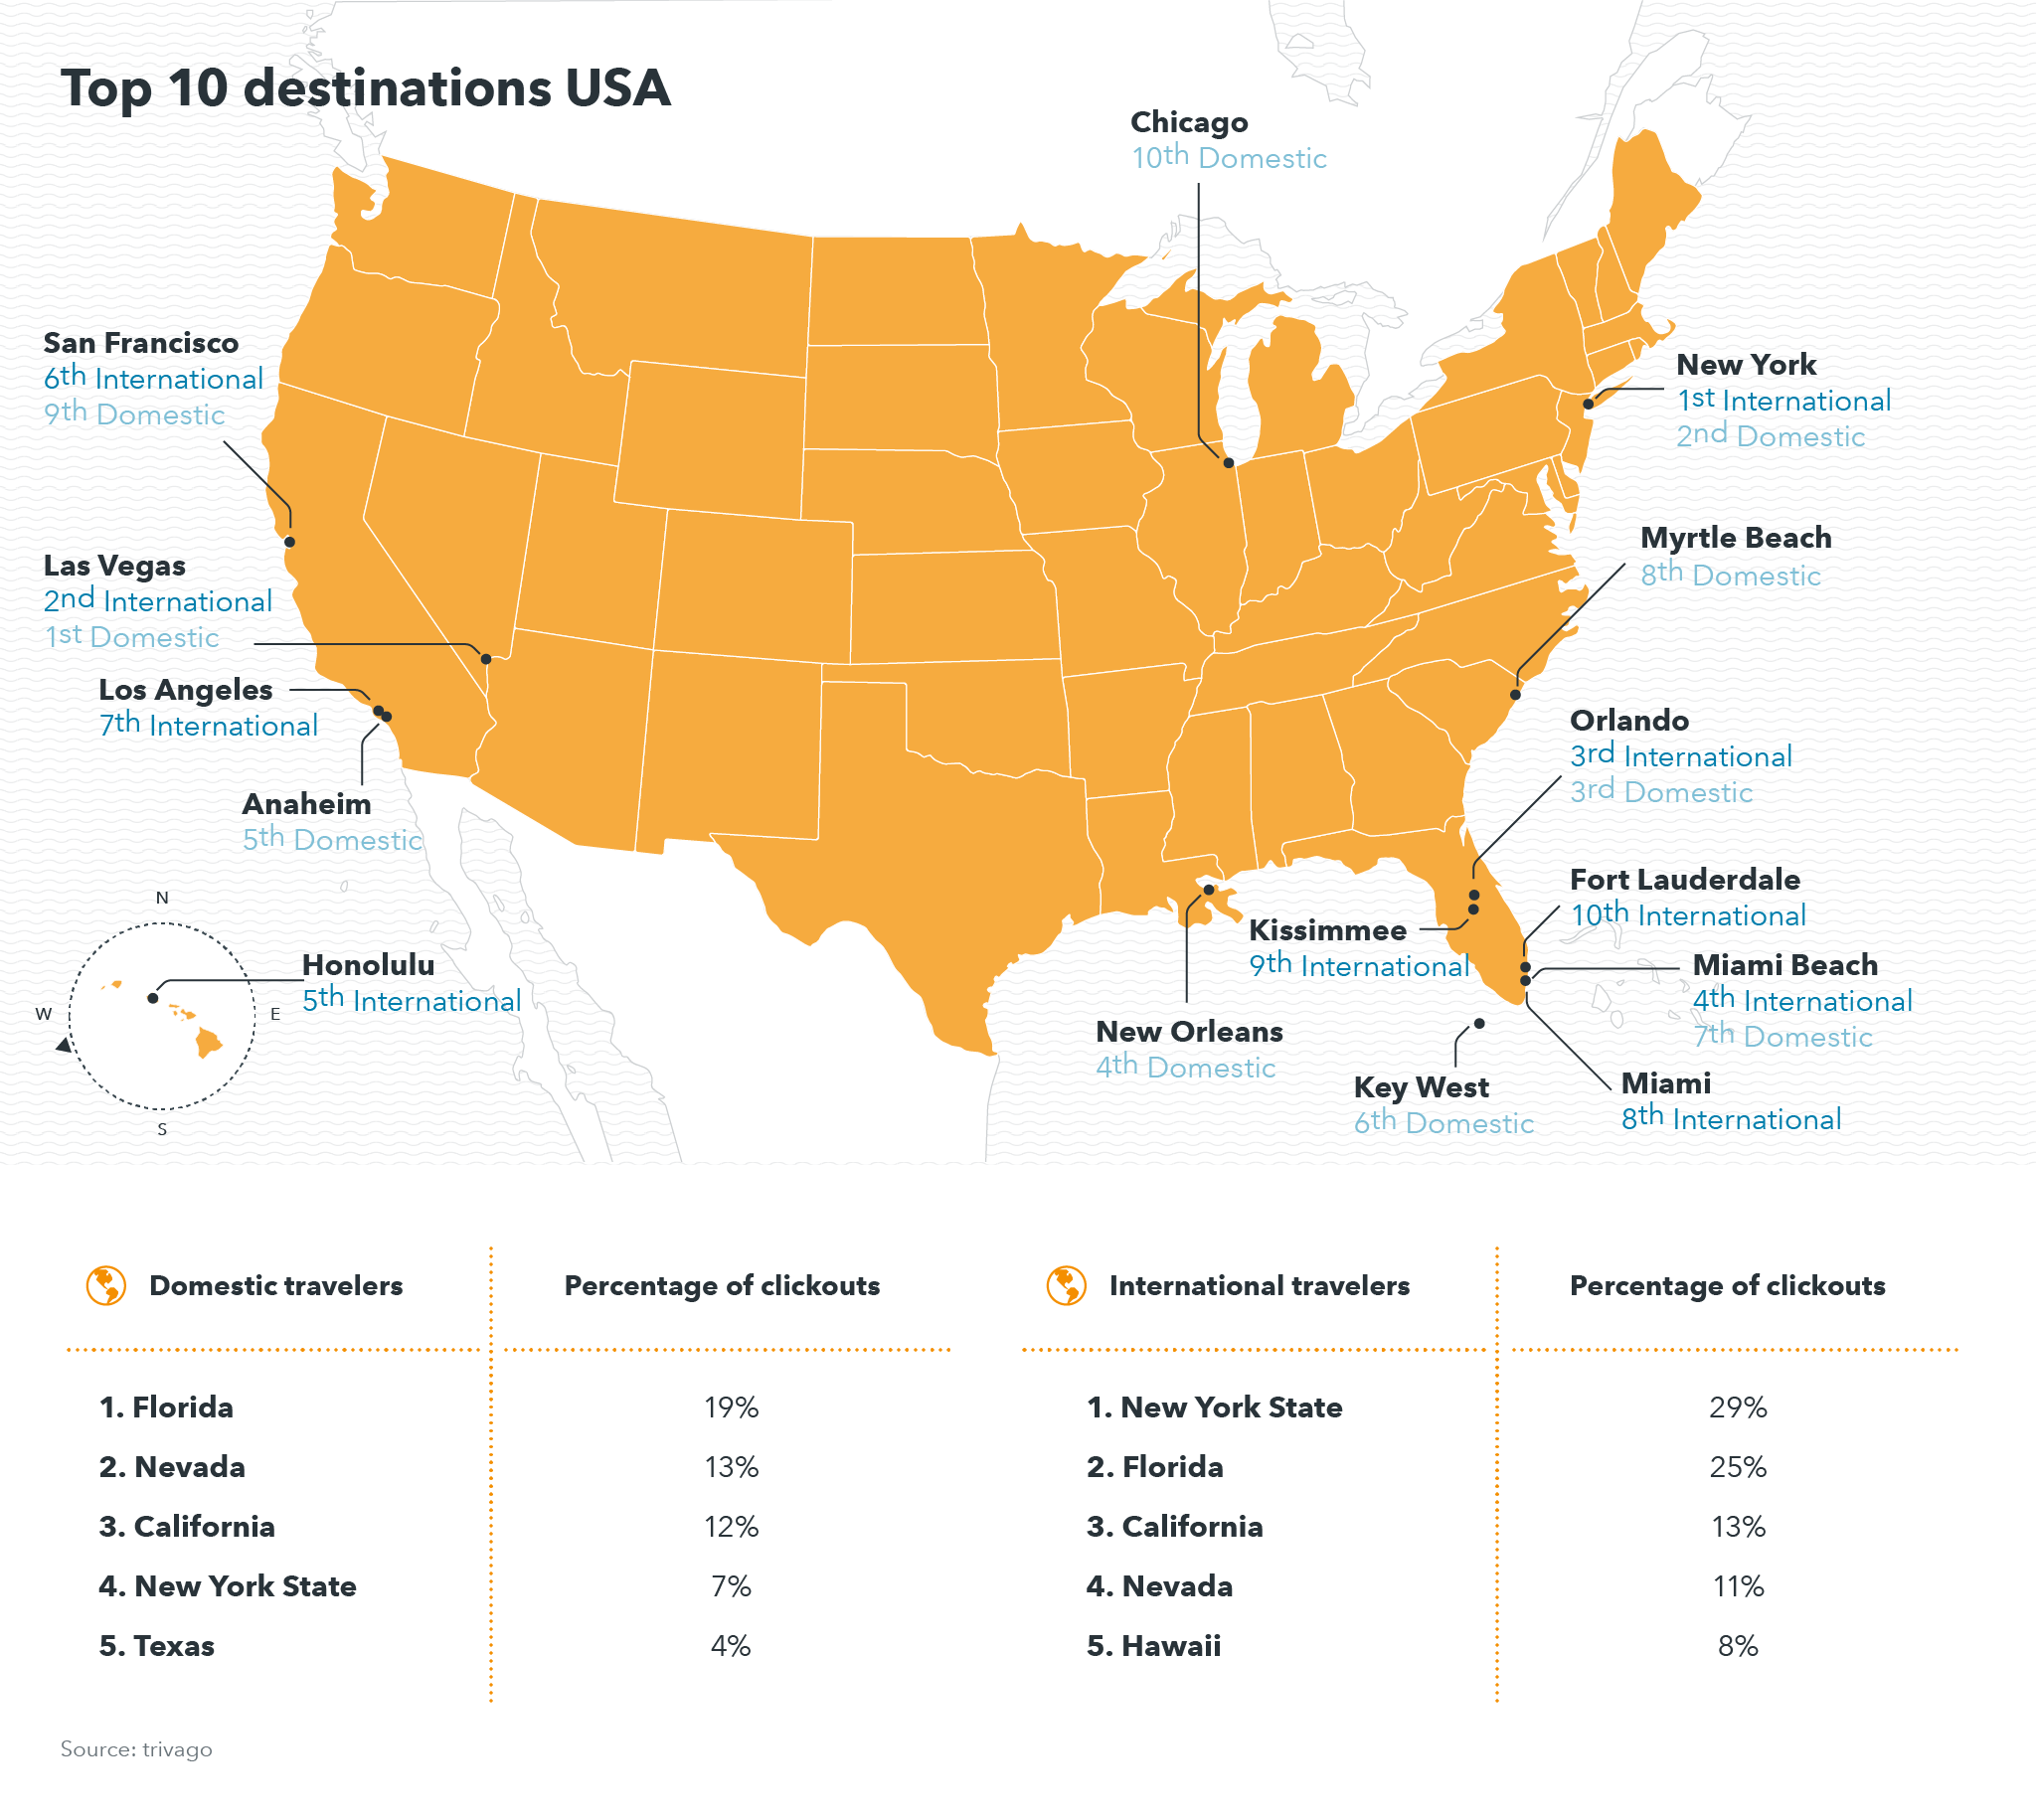 Top destinations USA